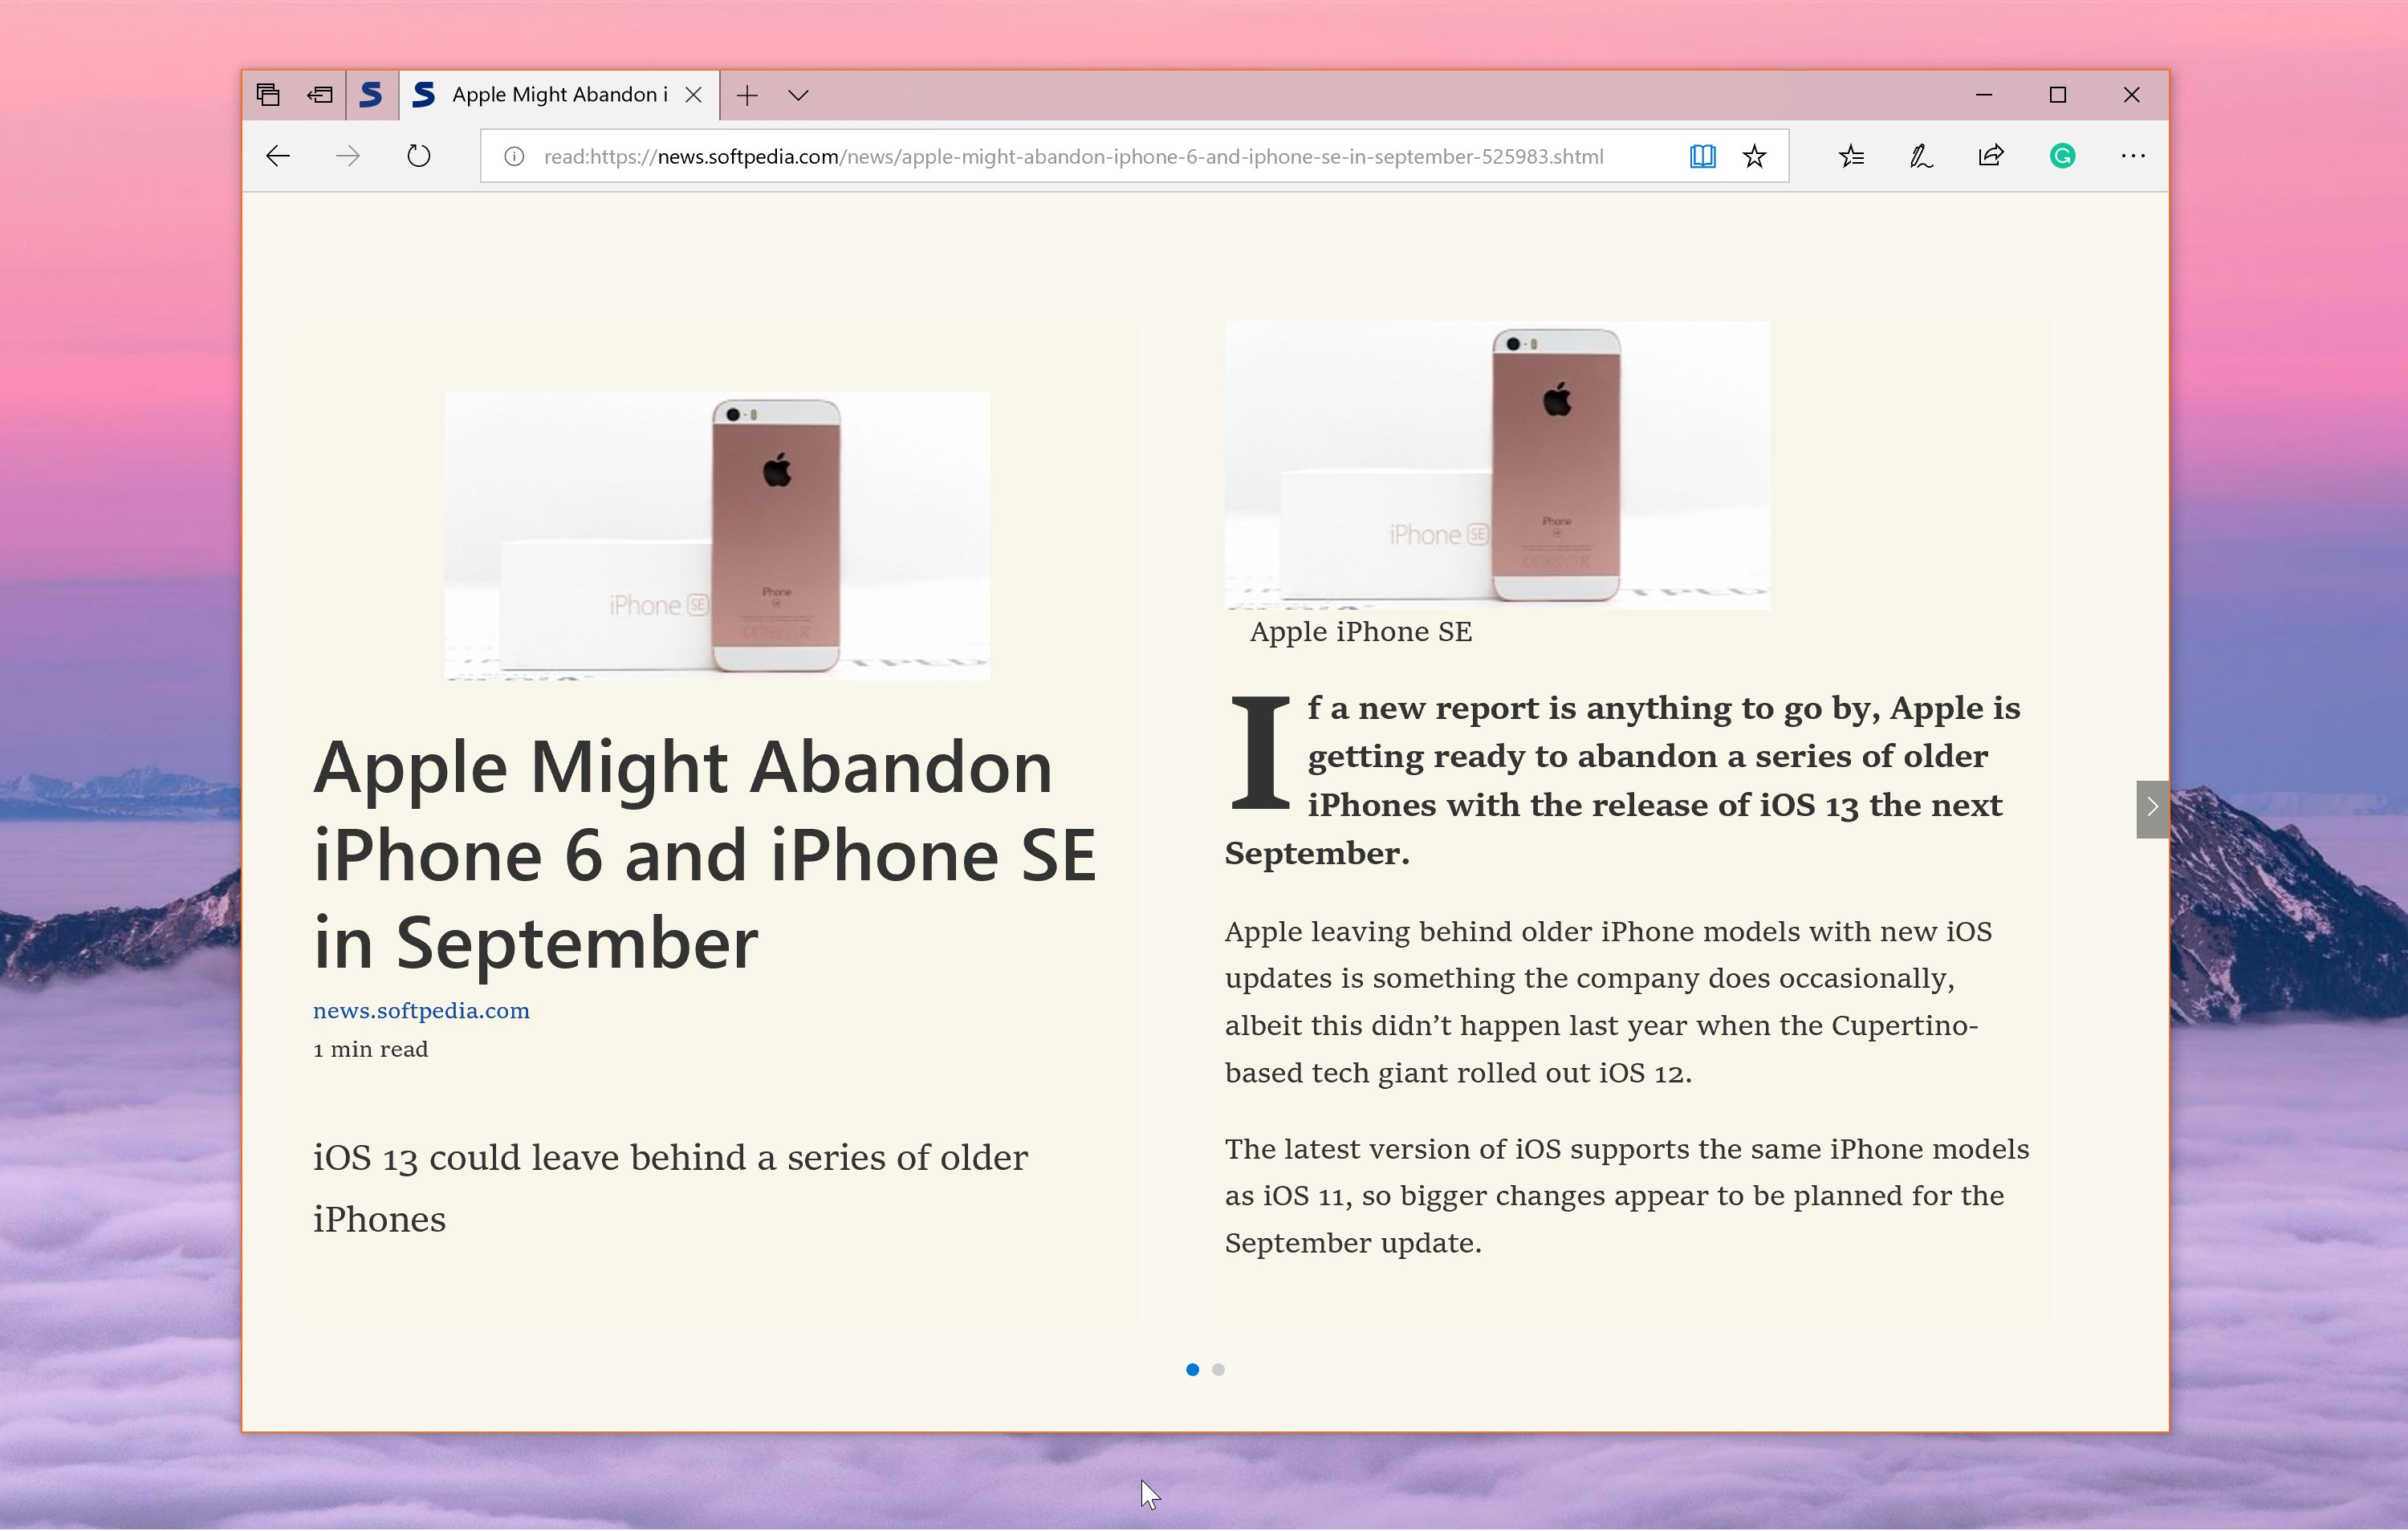 Chromium Microsoft Edge Getting a Top Feature of the